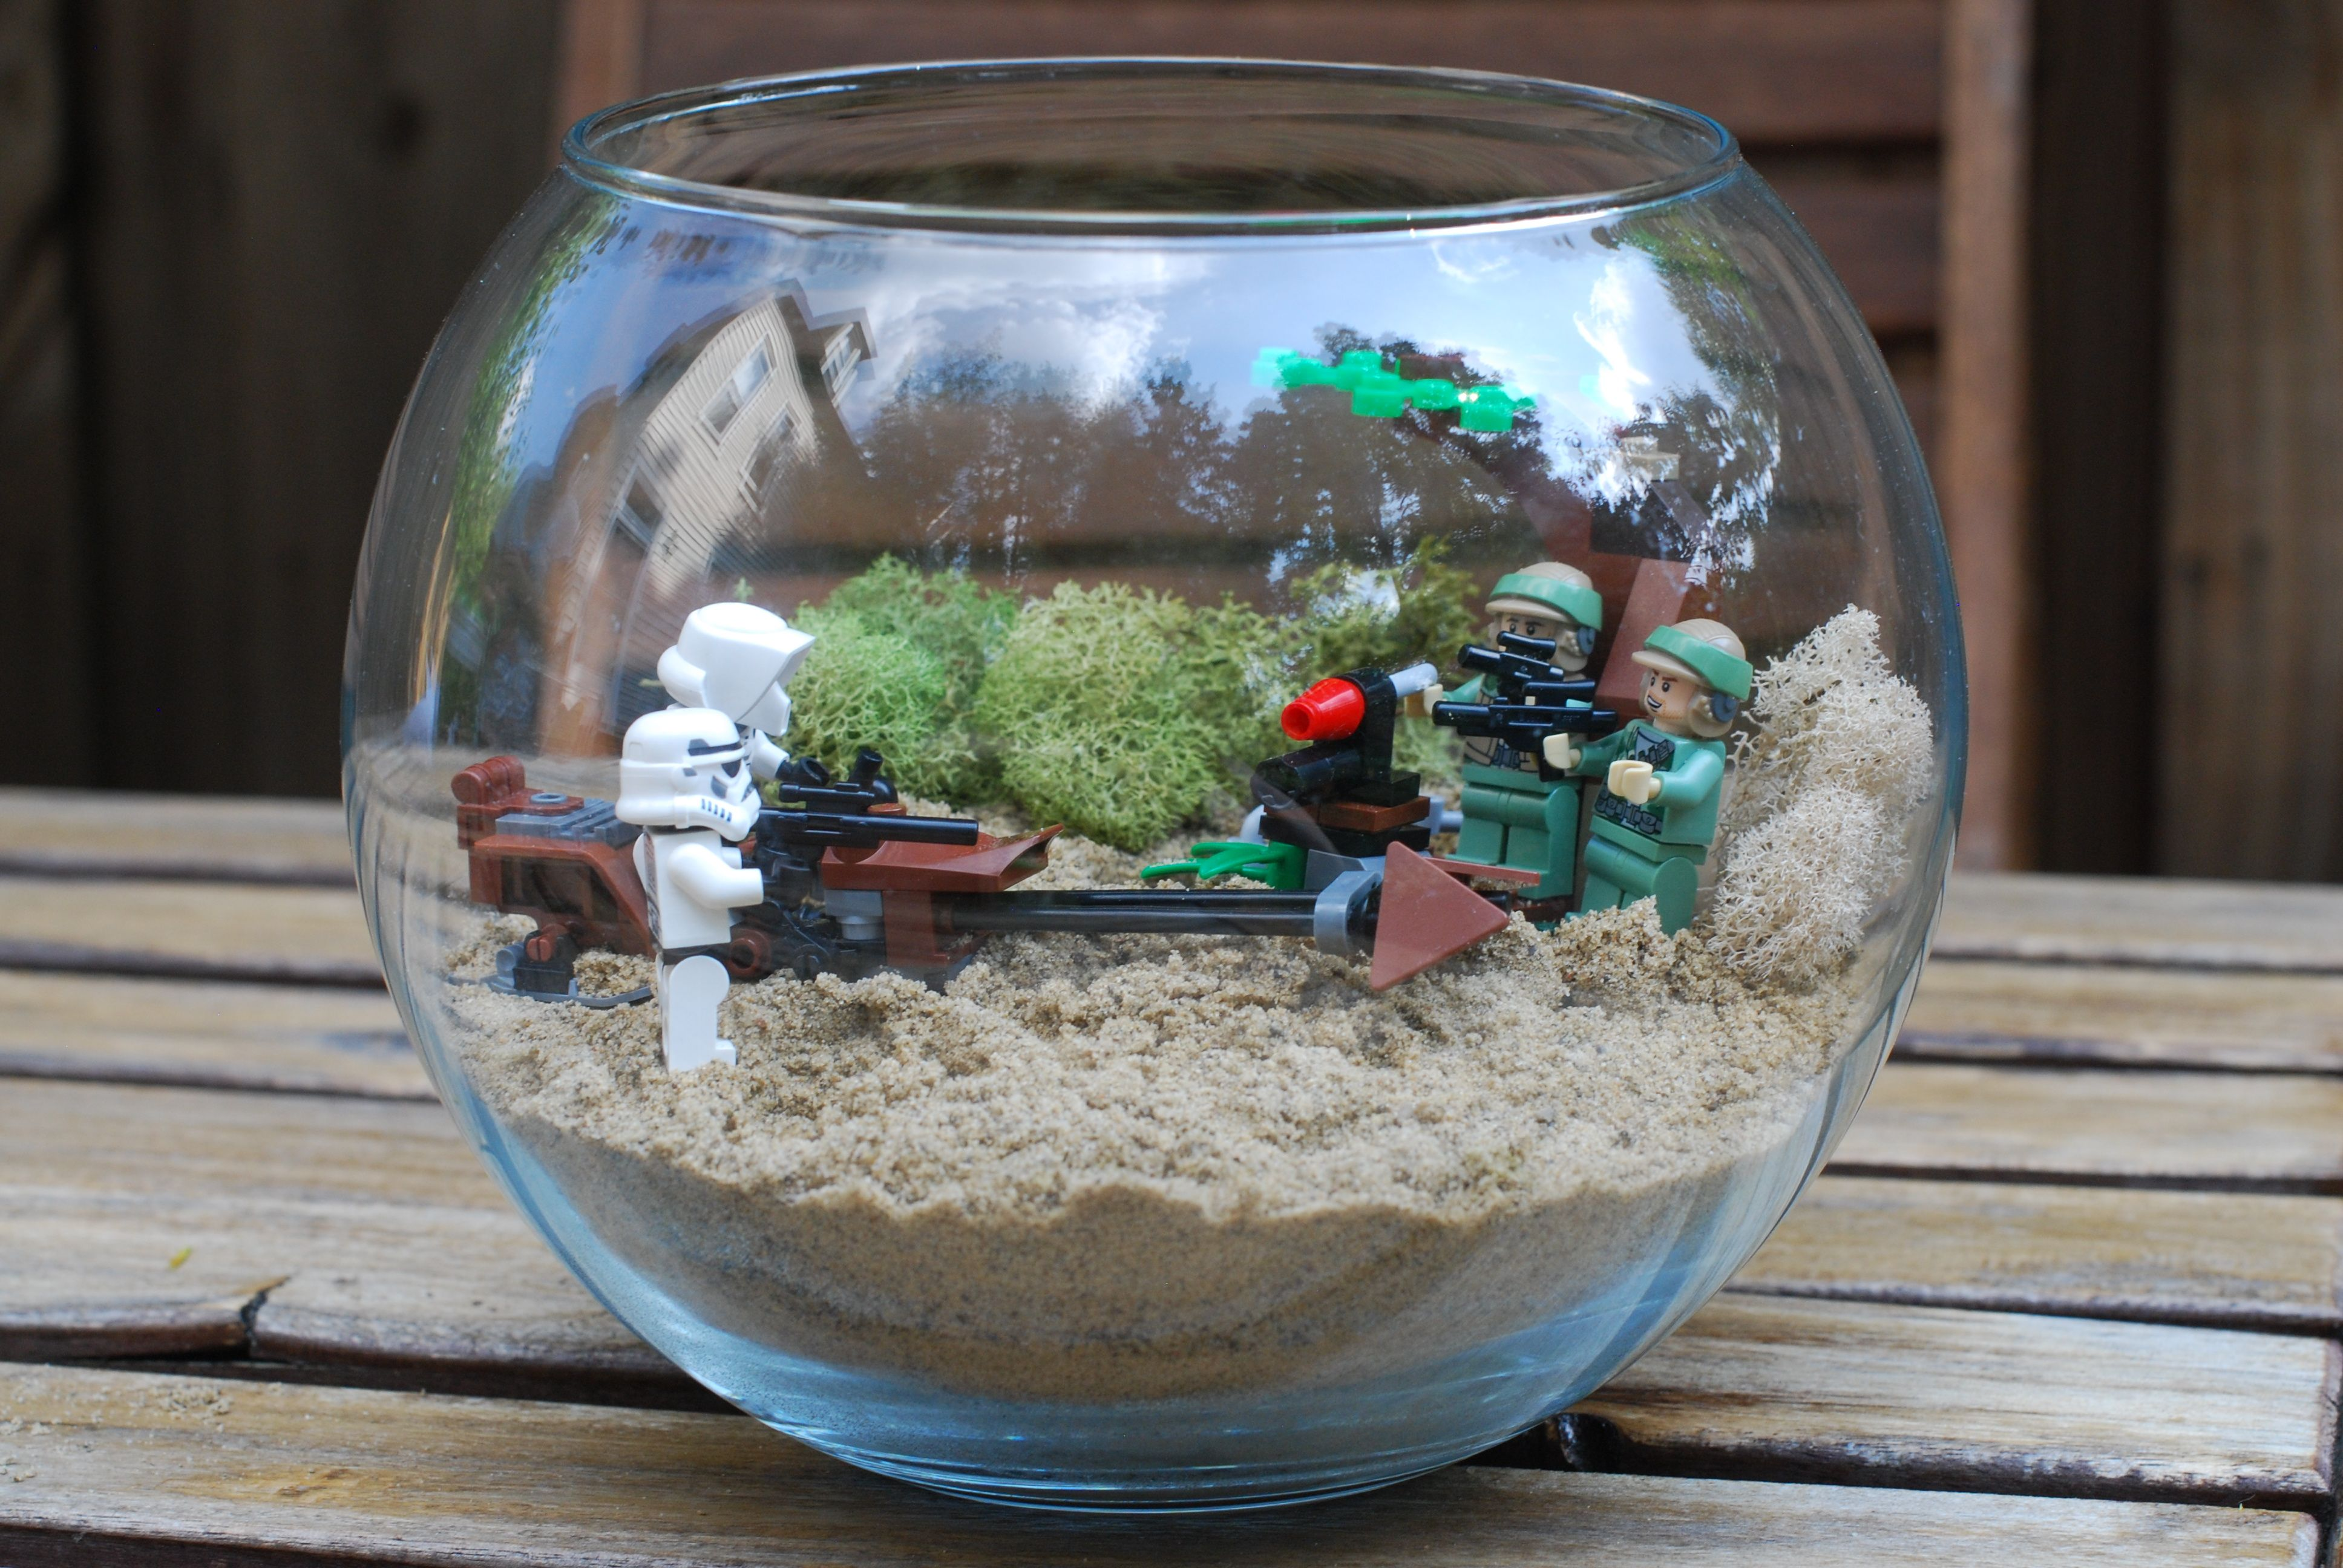 Very cool could make a star wars scene in glass bowl